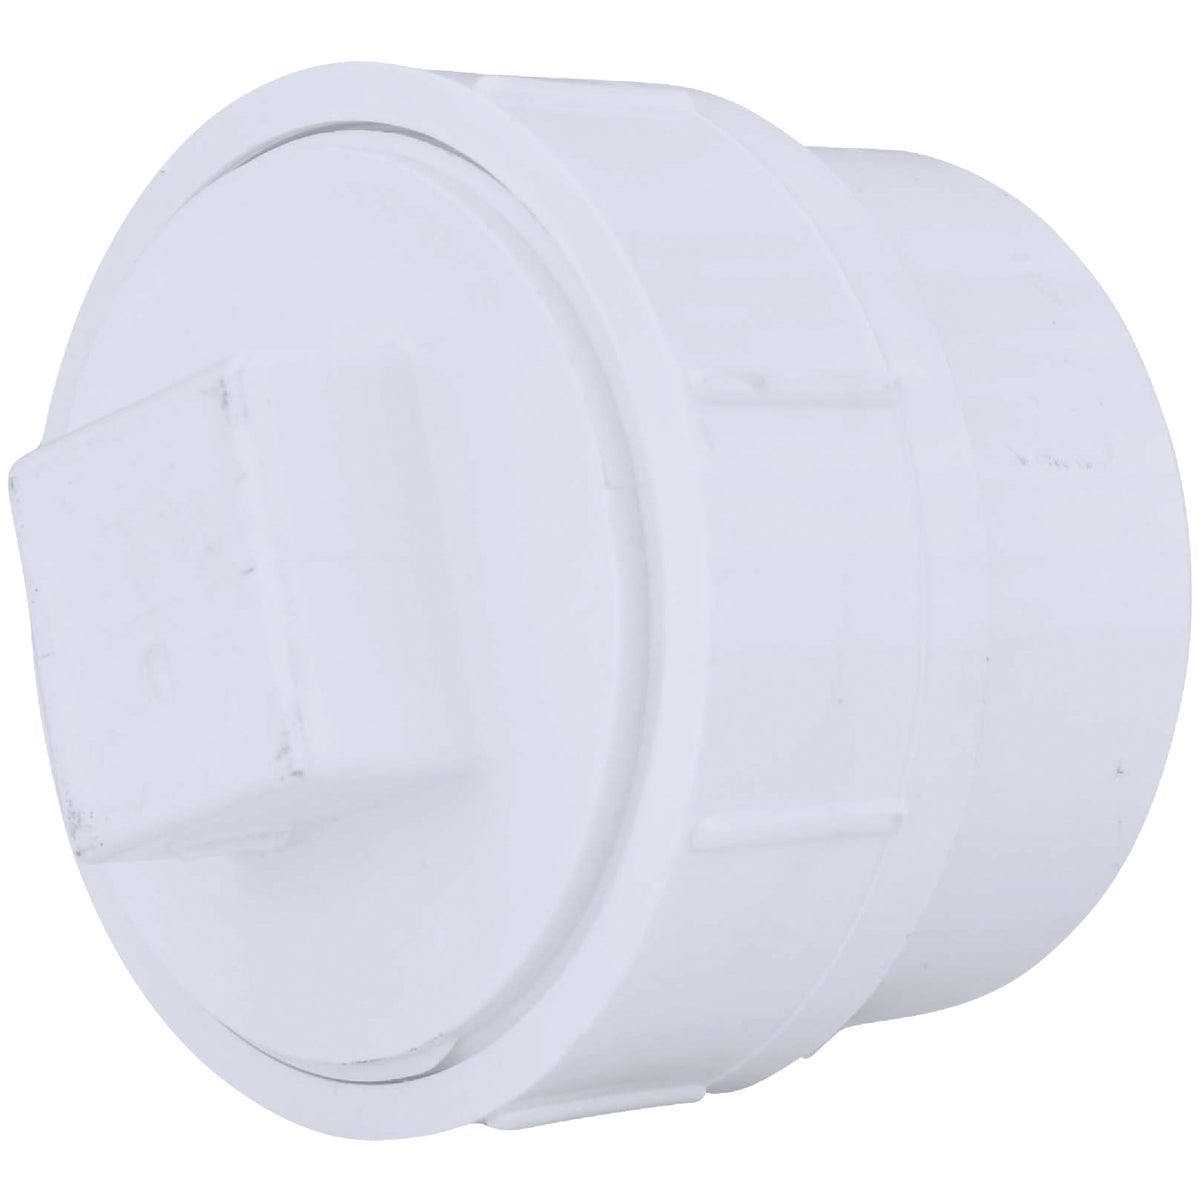 "4""PVC-DWV FITTING W/PLUG - 71640 by Genova Inc  Pvc Dwv"